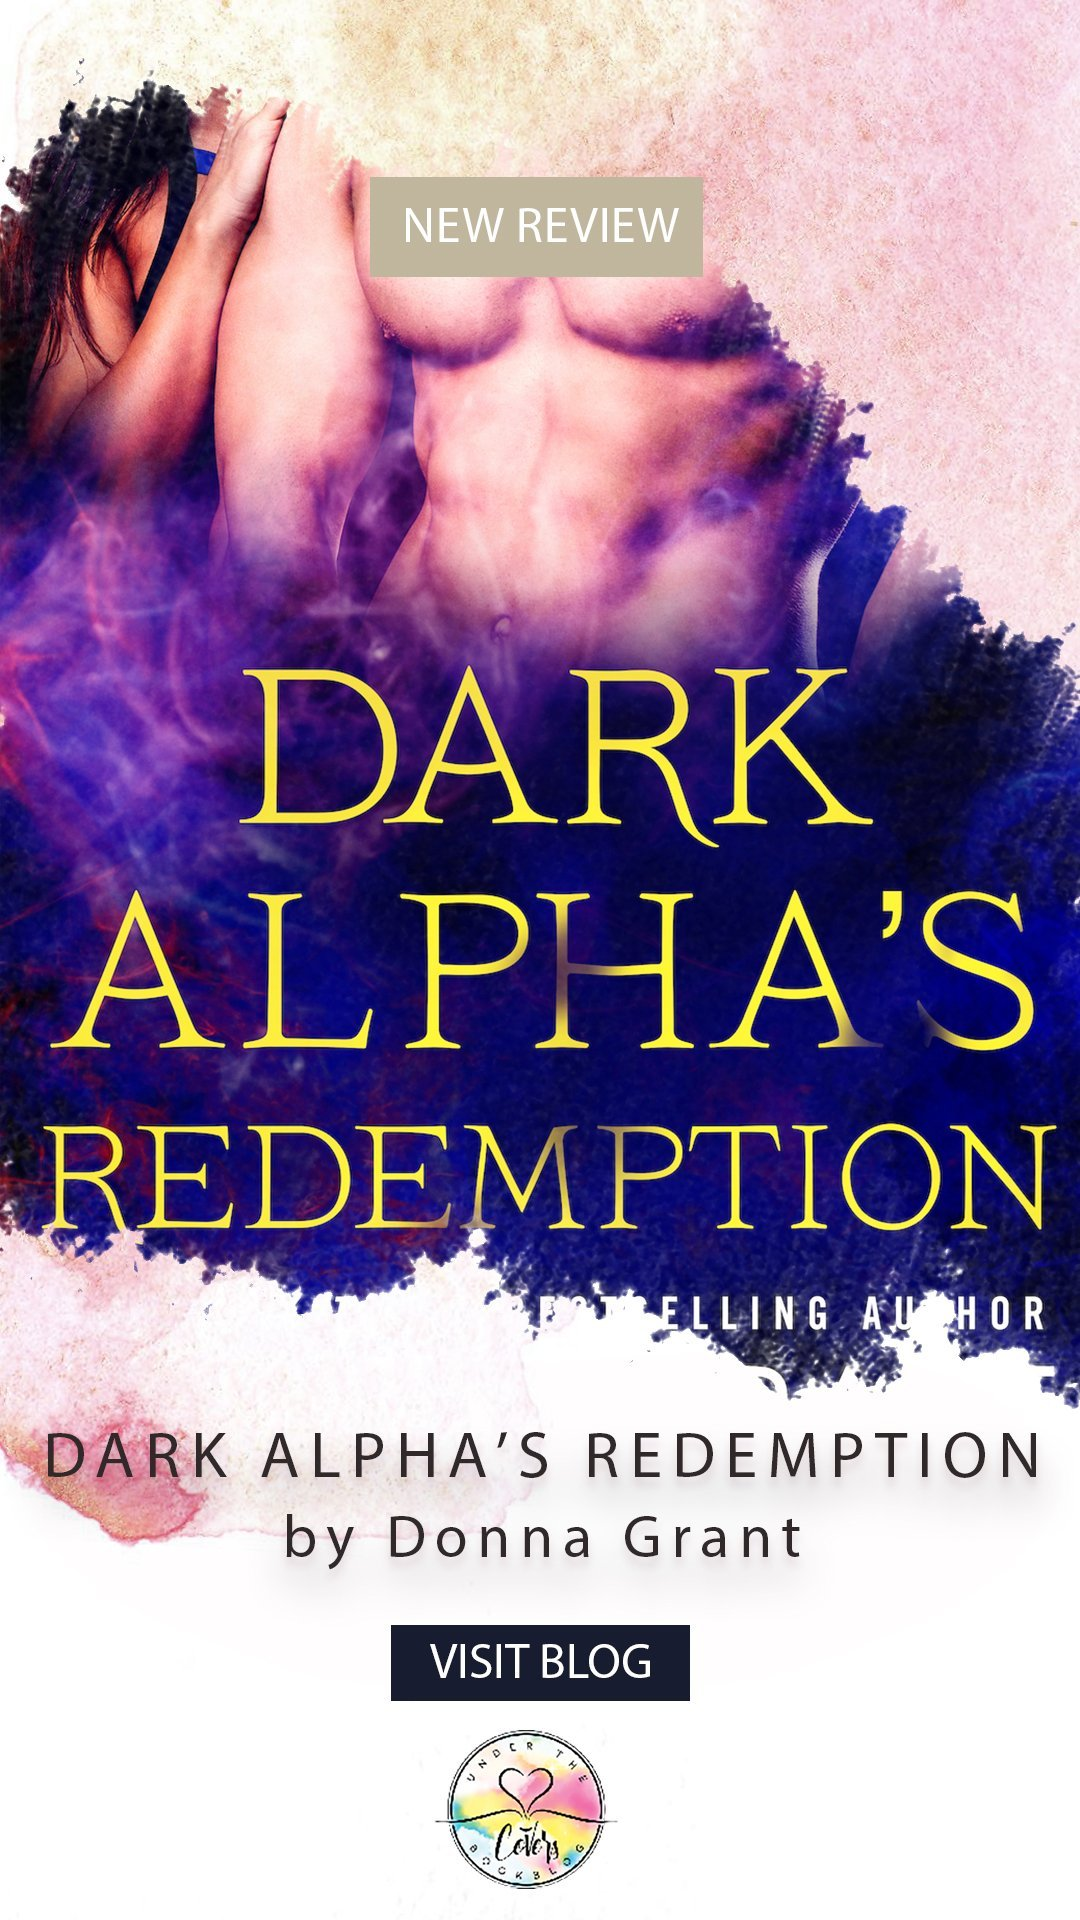 ARC Review: Dark Alpha's Redemption by Donna Grant